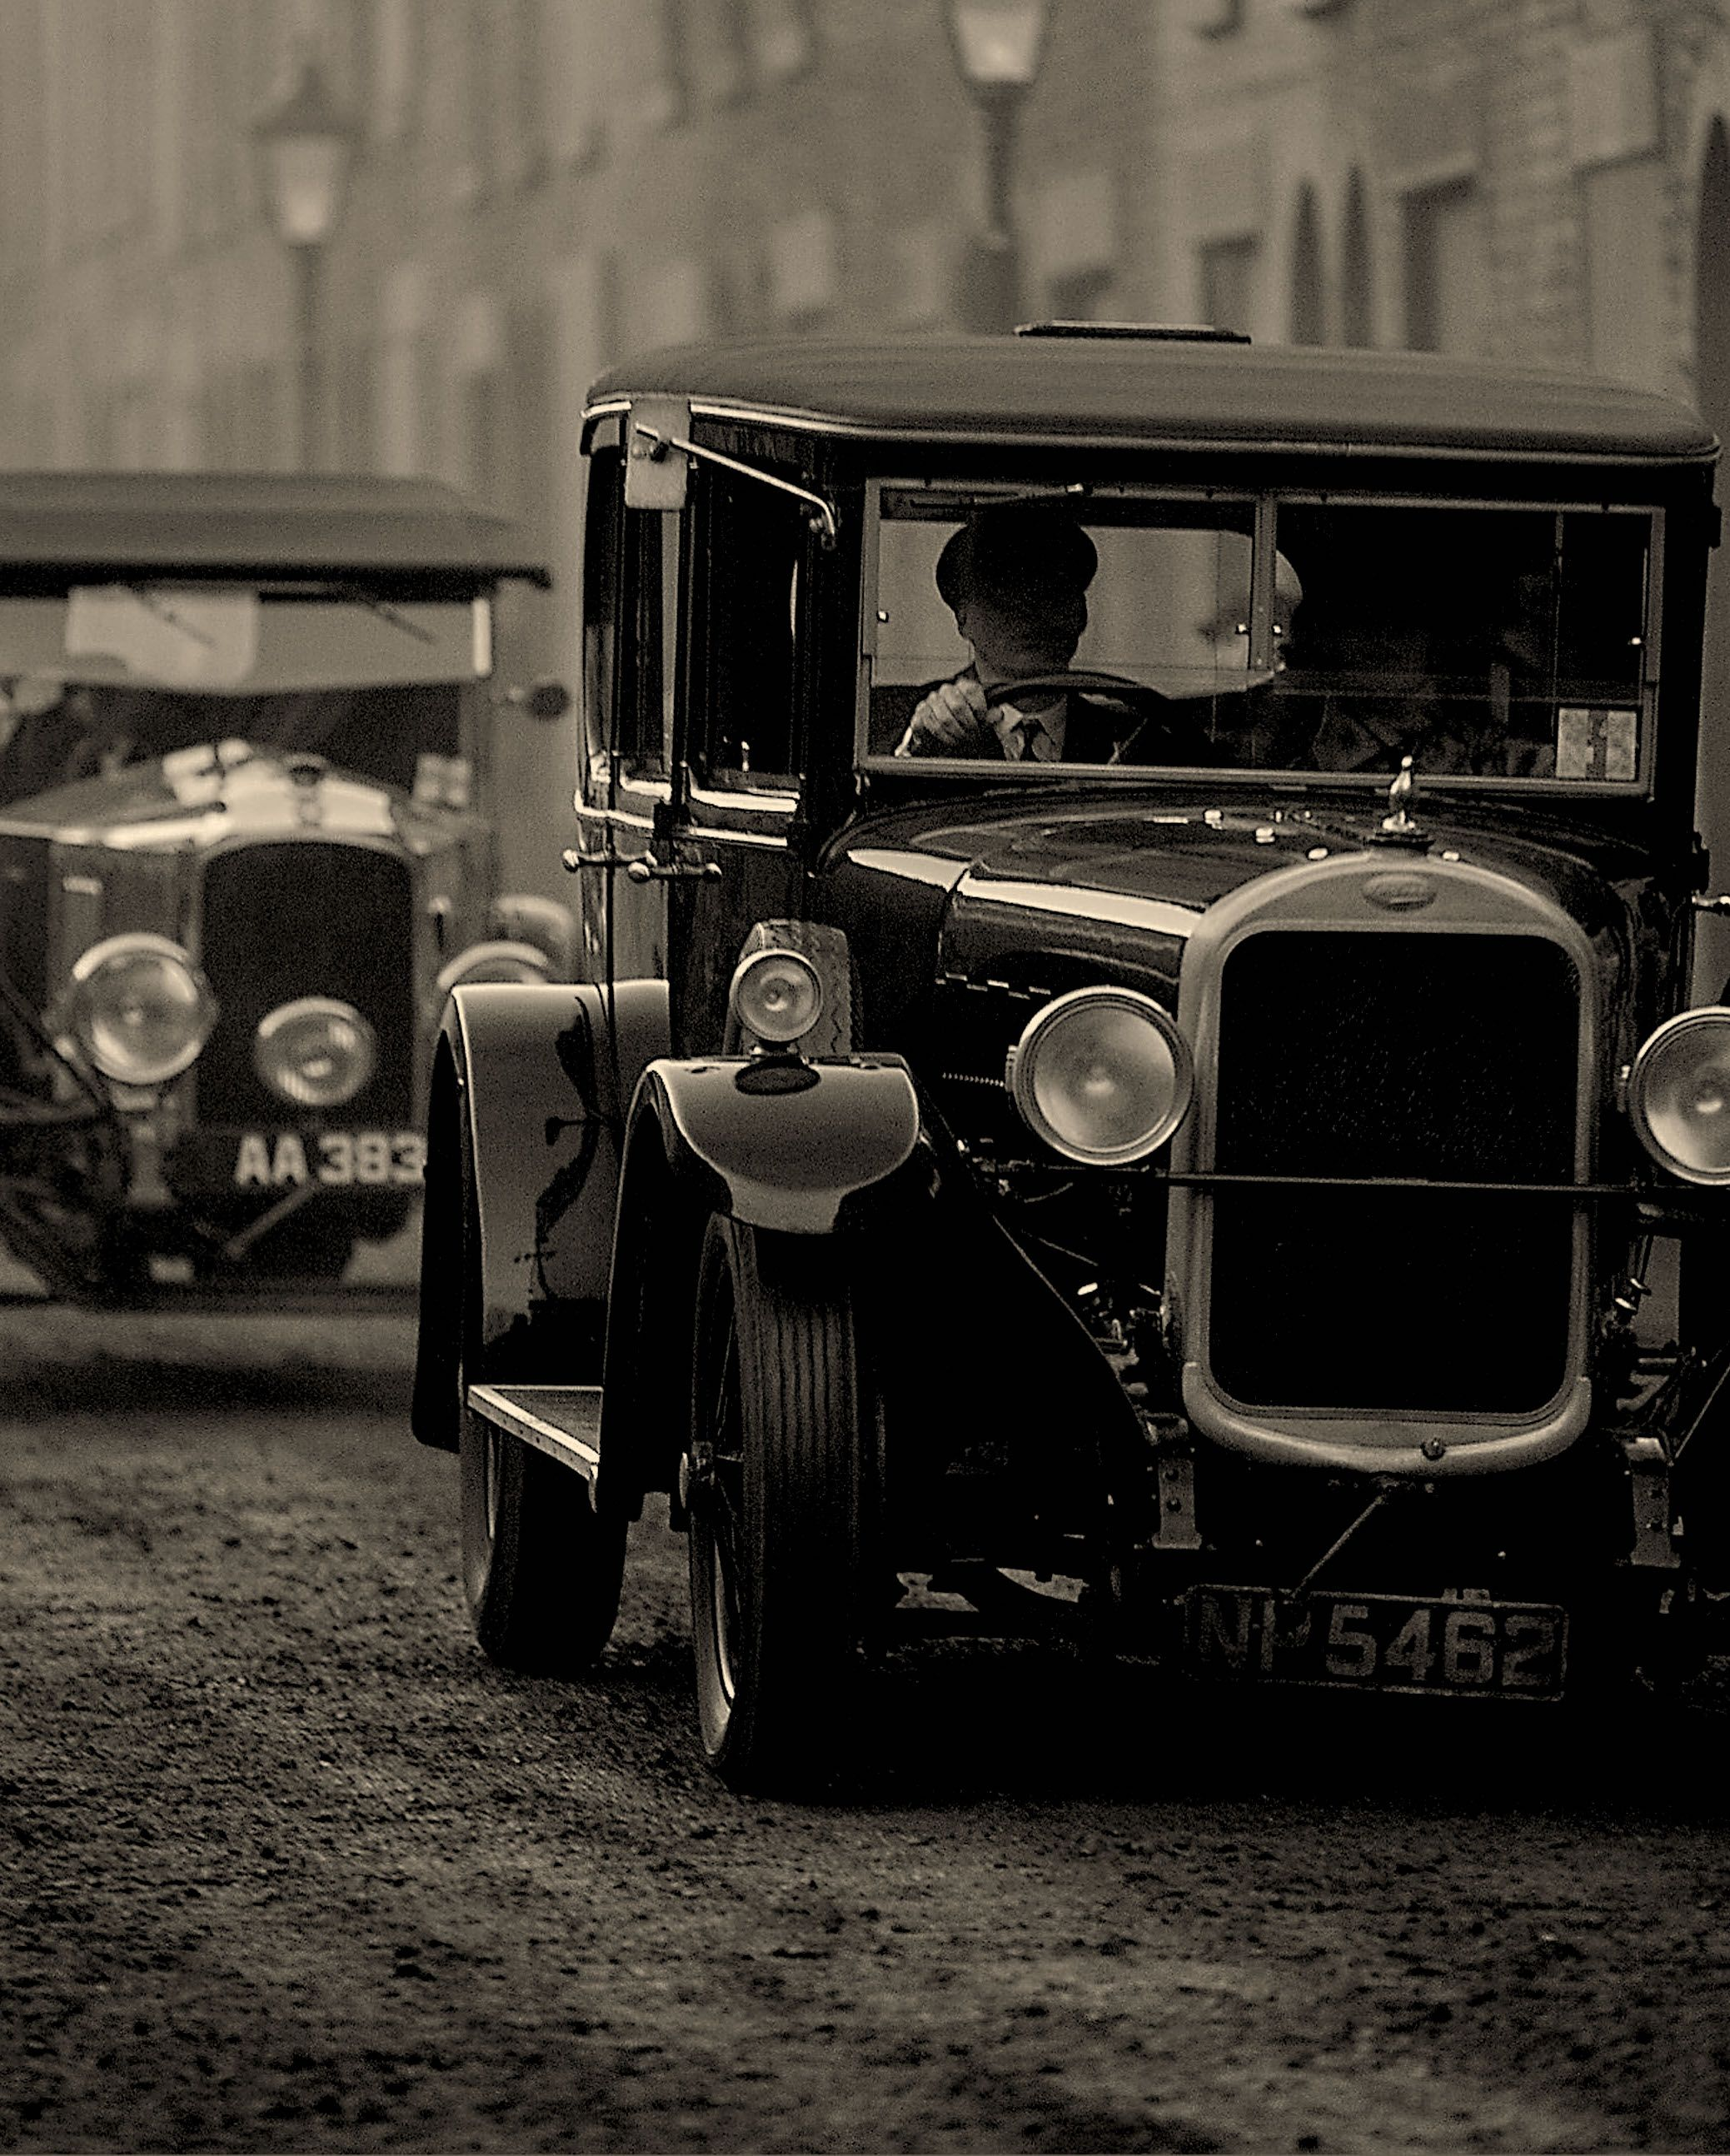 Pin By Sara On Tv 91 Days Peaky Blinders 1920s Aesthetic Photo